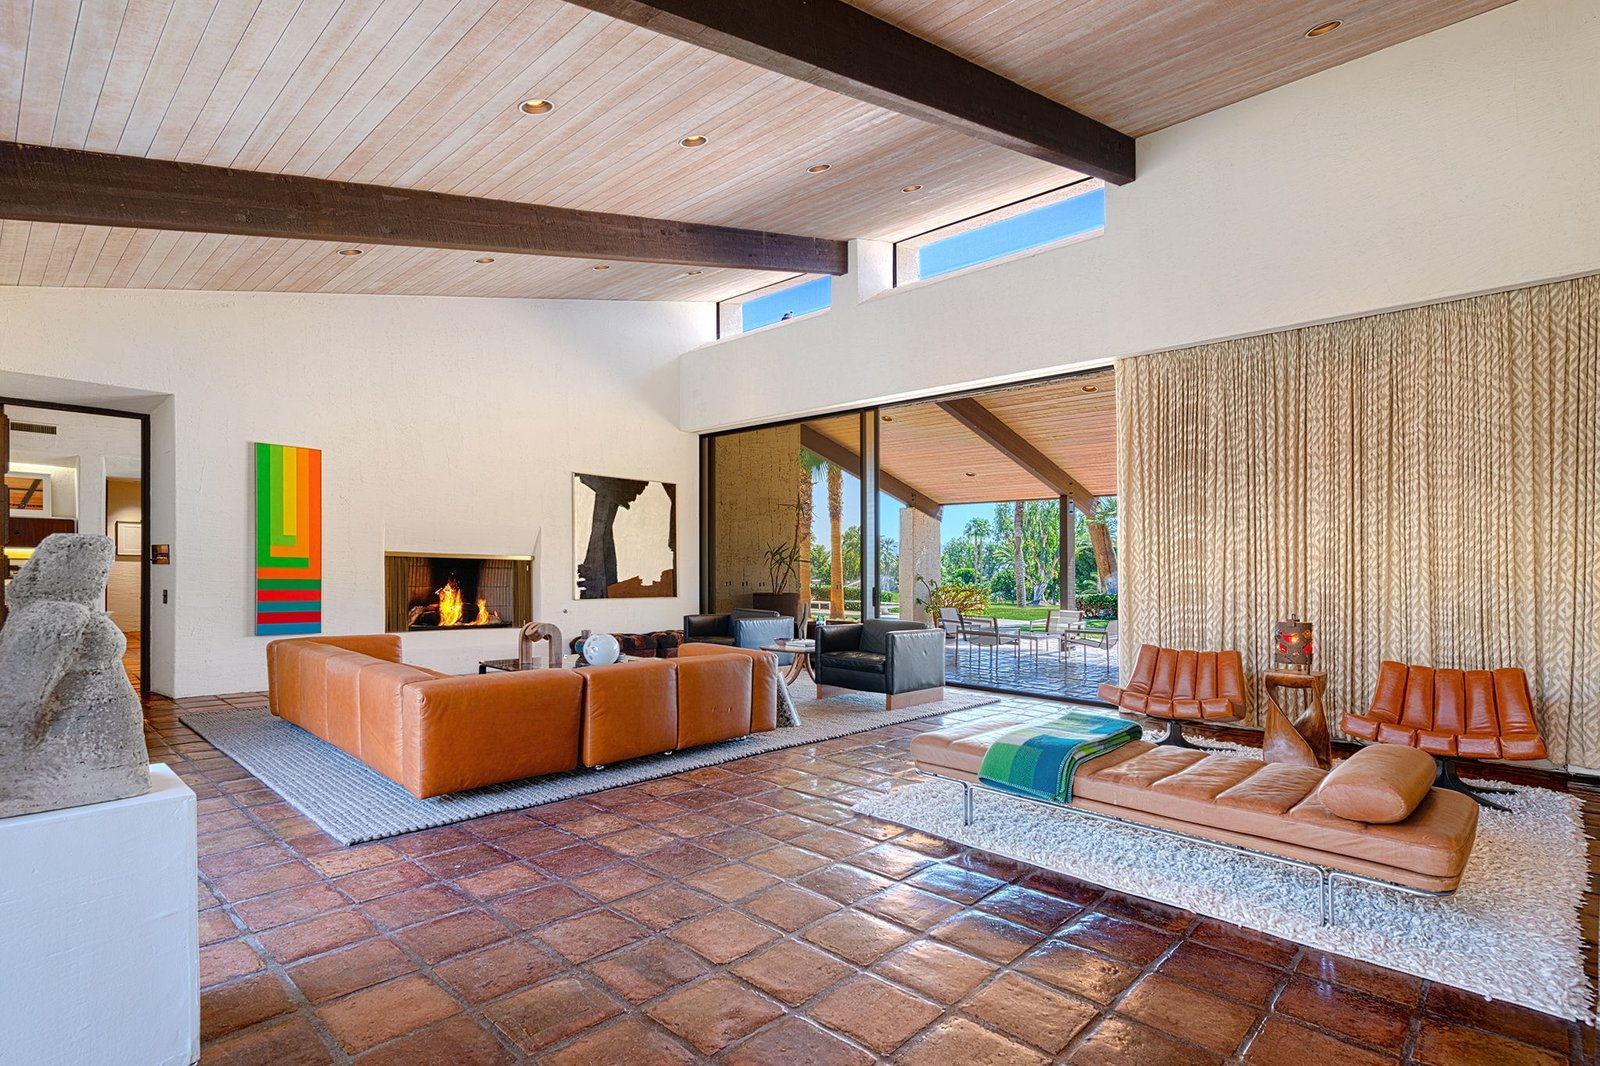 Rubinstein House William Cody Rancho Mirage  Living Room Fireplace Clerestory Windows Tongue-and-Groove  living room